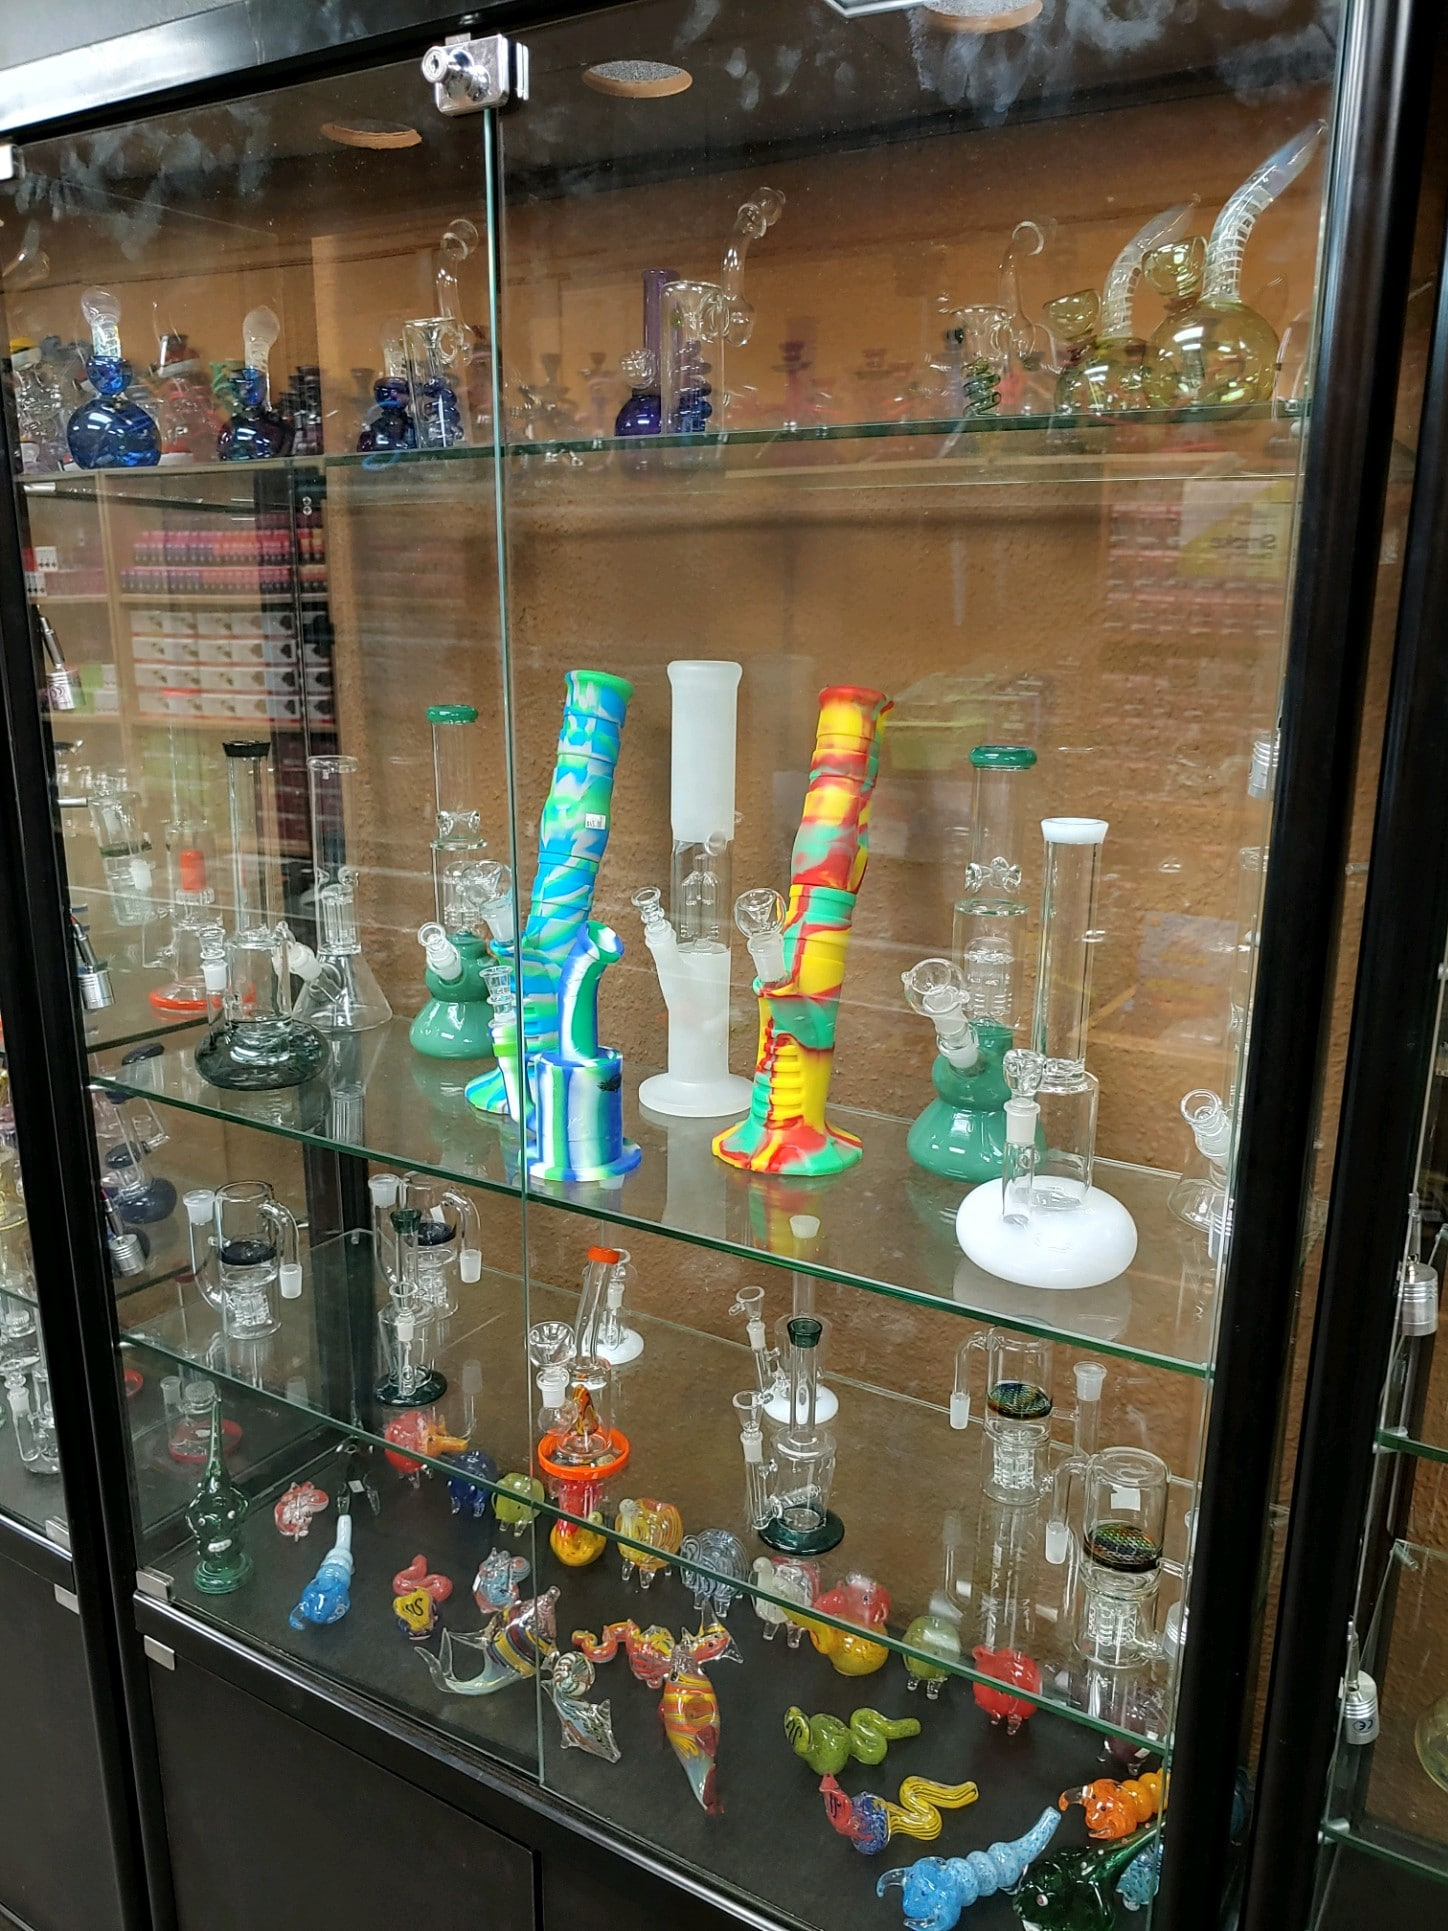 water pipes and bubblers